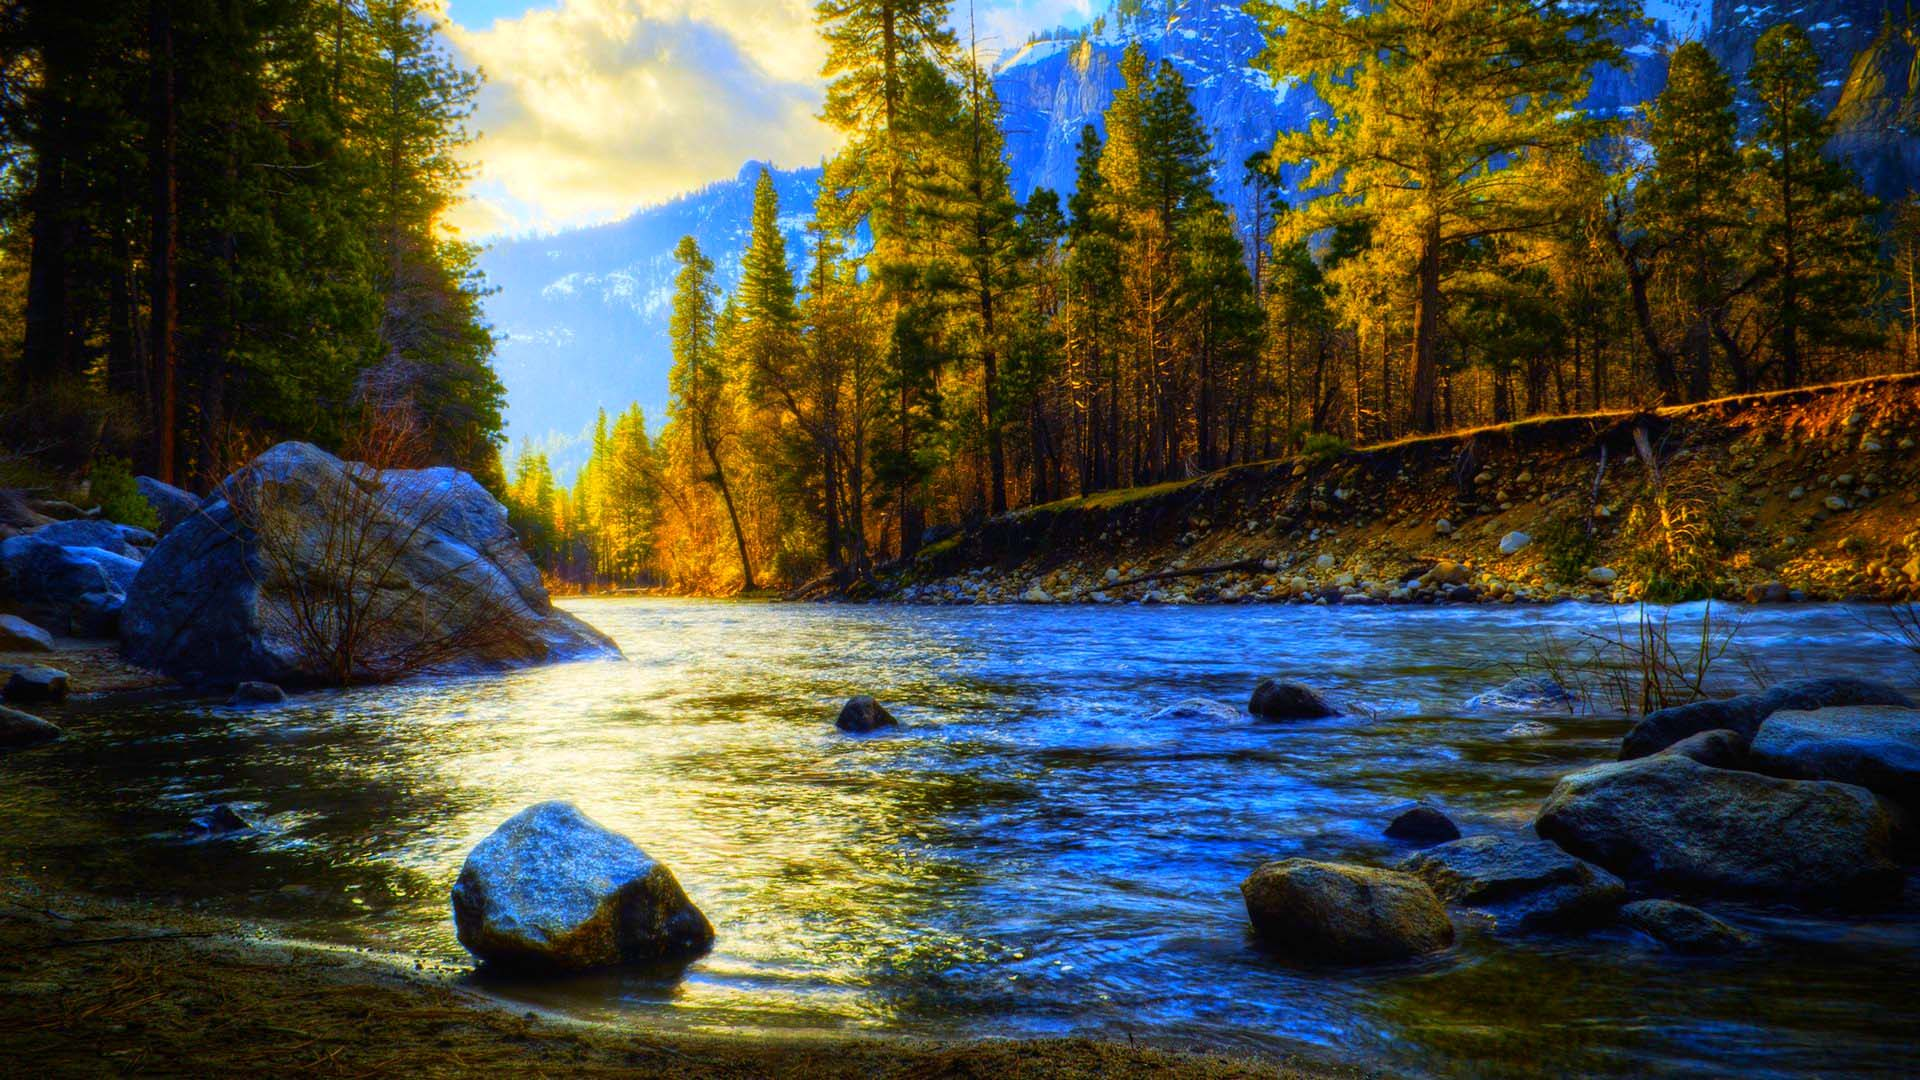 spring river nice images download picture photos wallpaper download